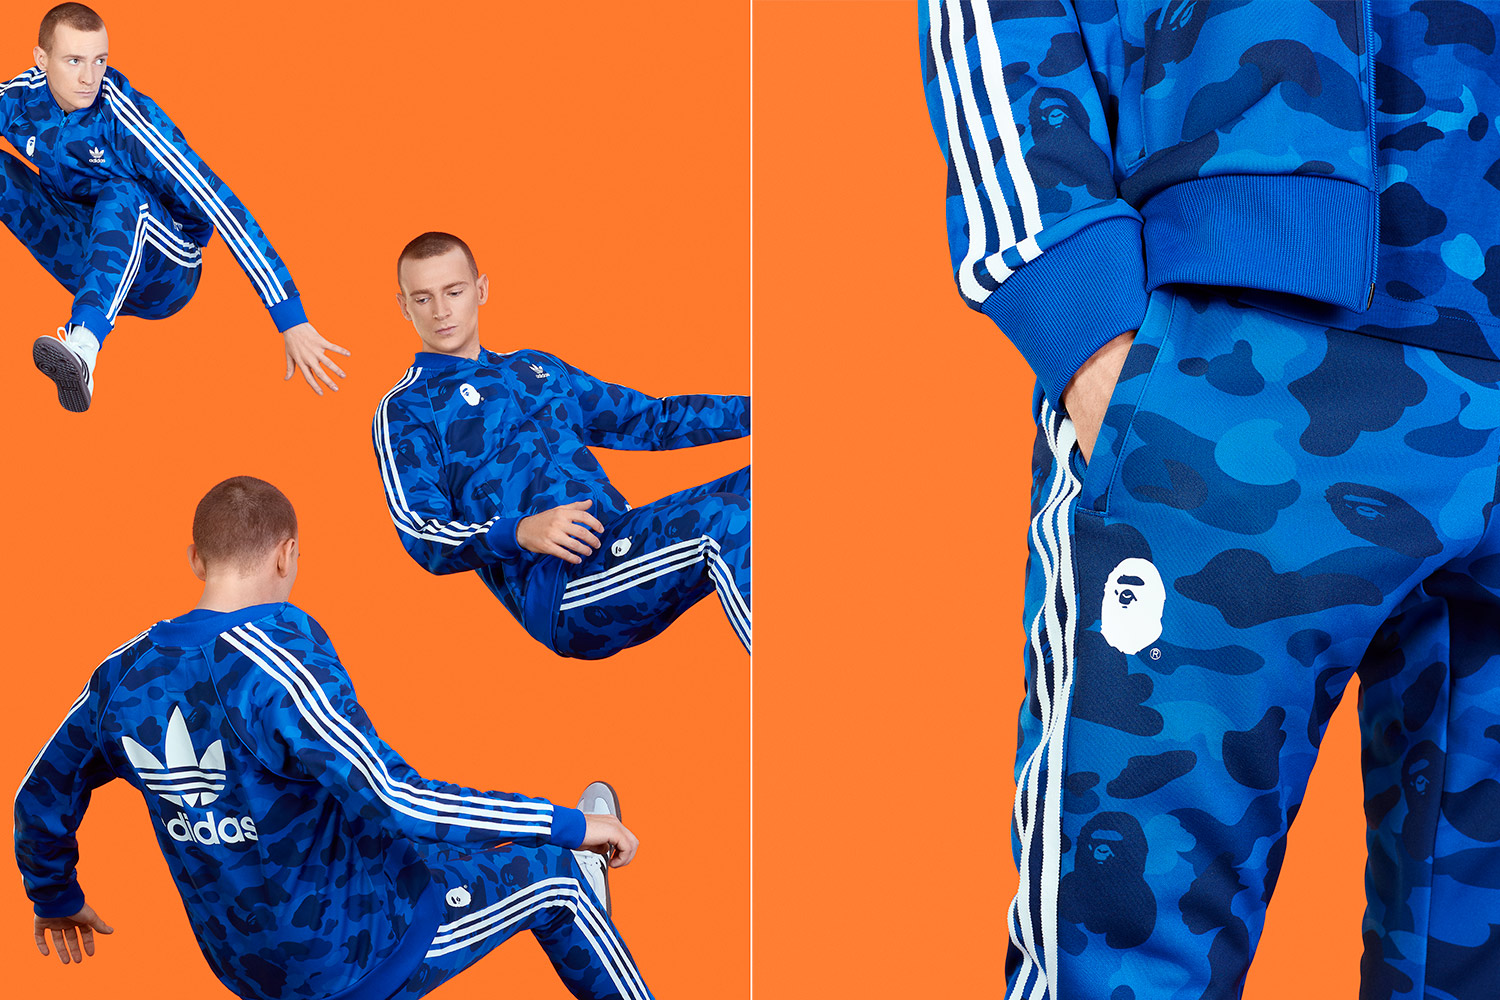 adidas-Originals-A-Bathing-Ape-02